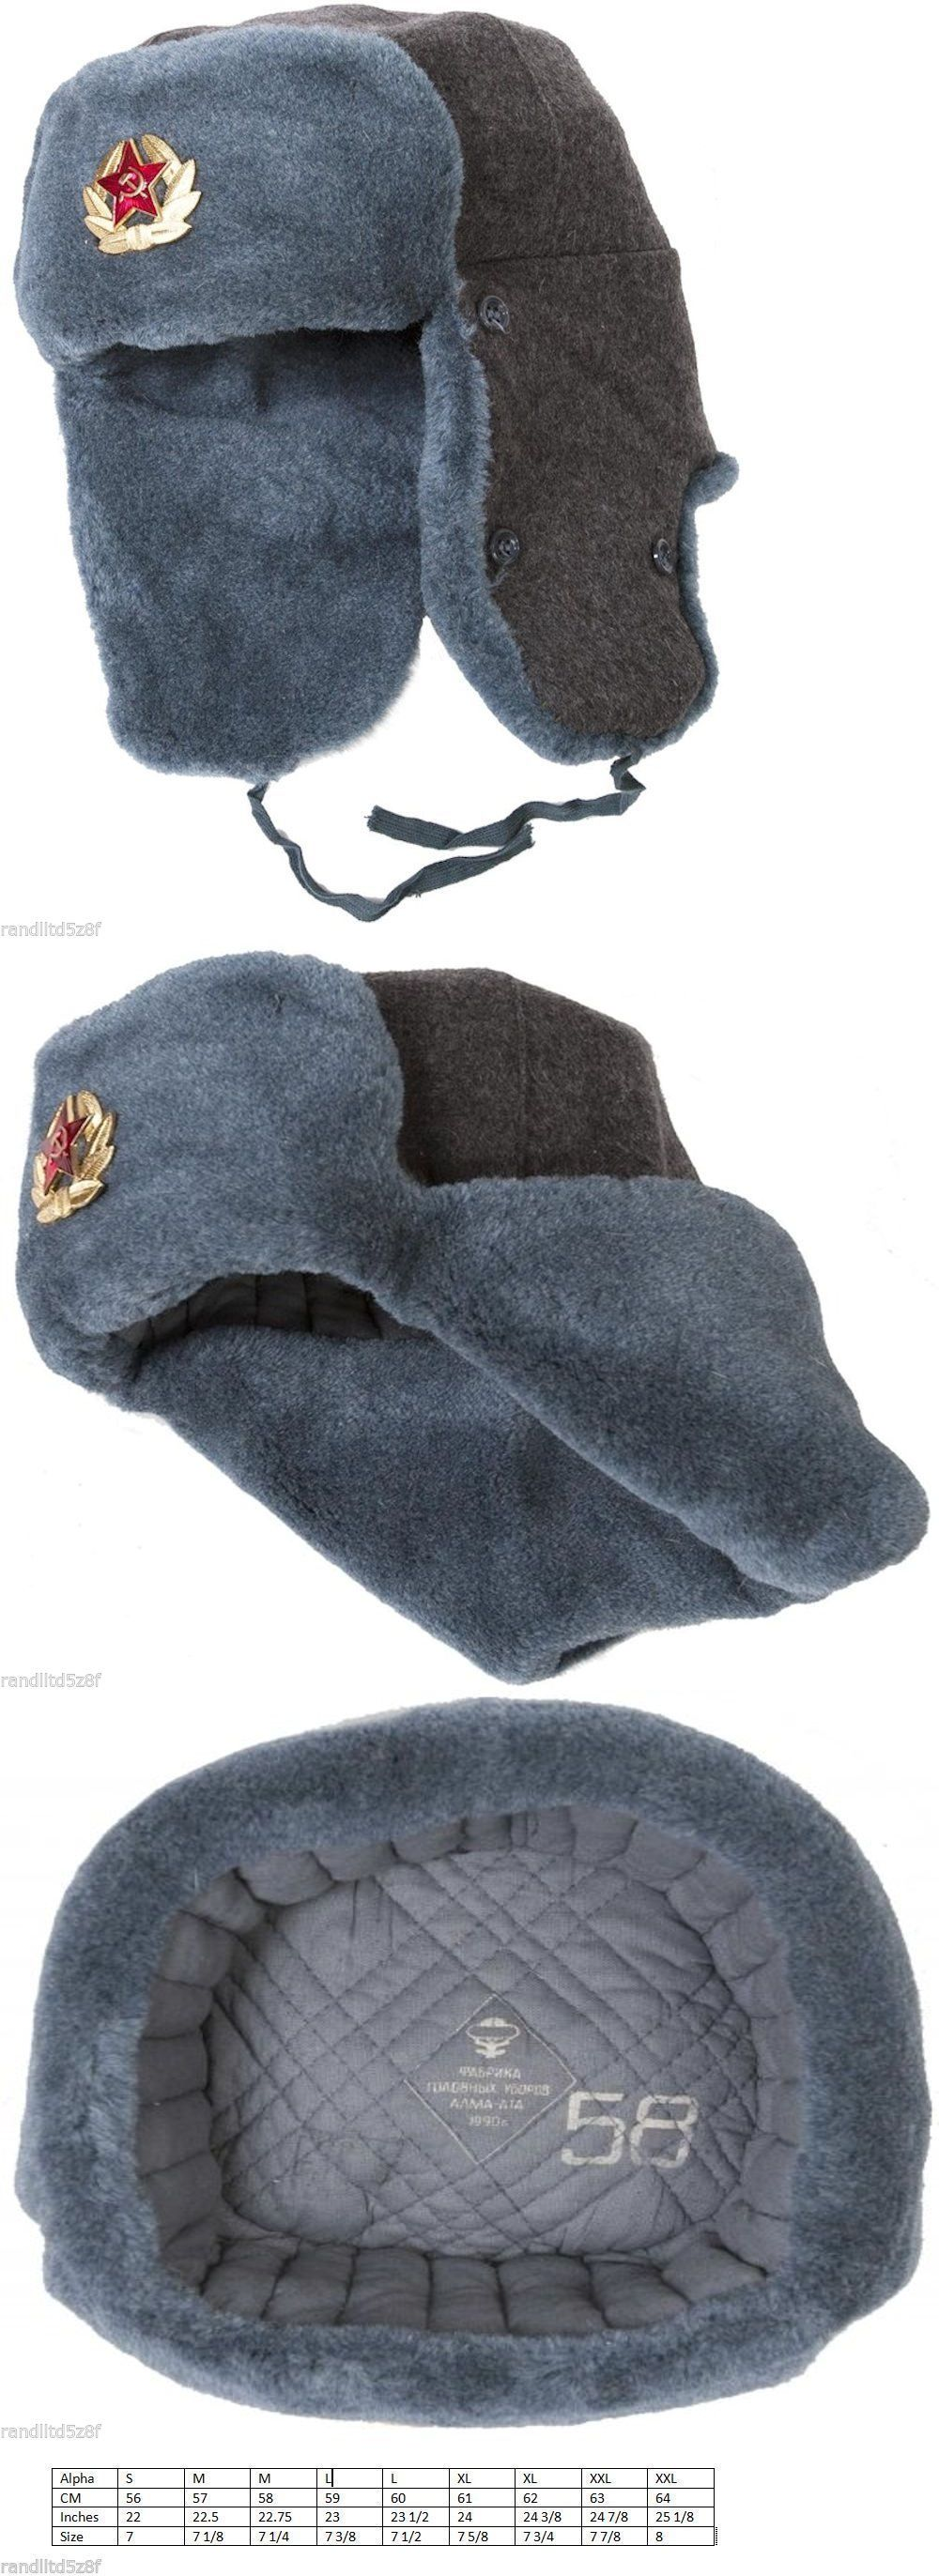 5e5a7917459a6 Hats 57884  Ussr Vintage Russian Army Ushanka Winter Hat